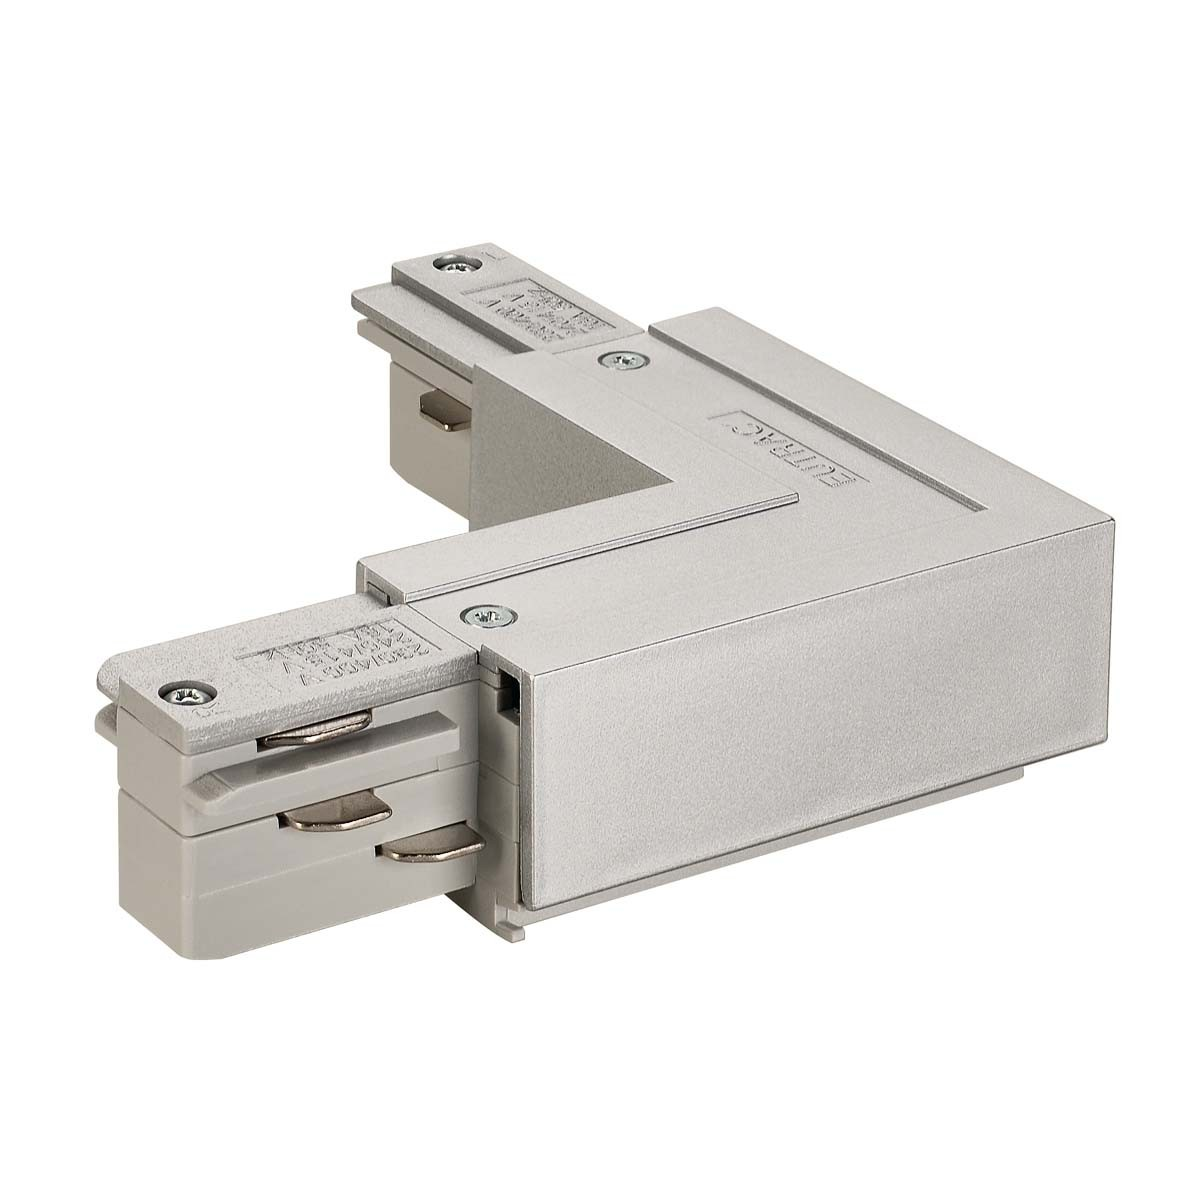 SLV 145674 L Coupler Earth Outer Silver Grey Eutrac 3 Circuit 240V Surface Track Accessory